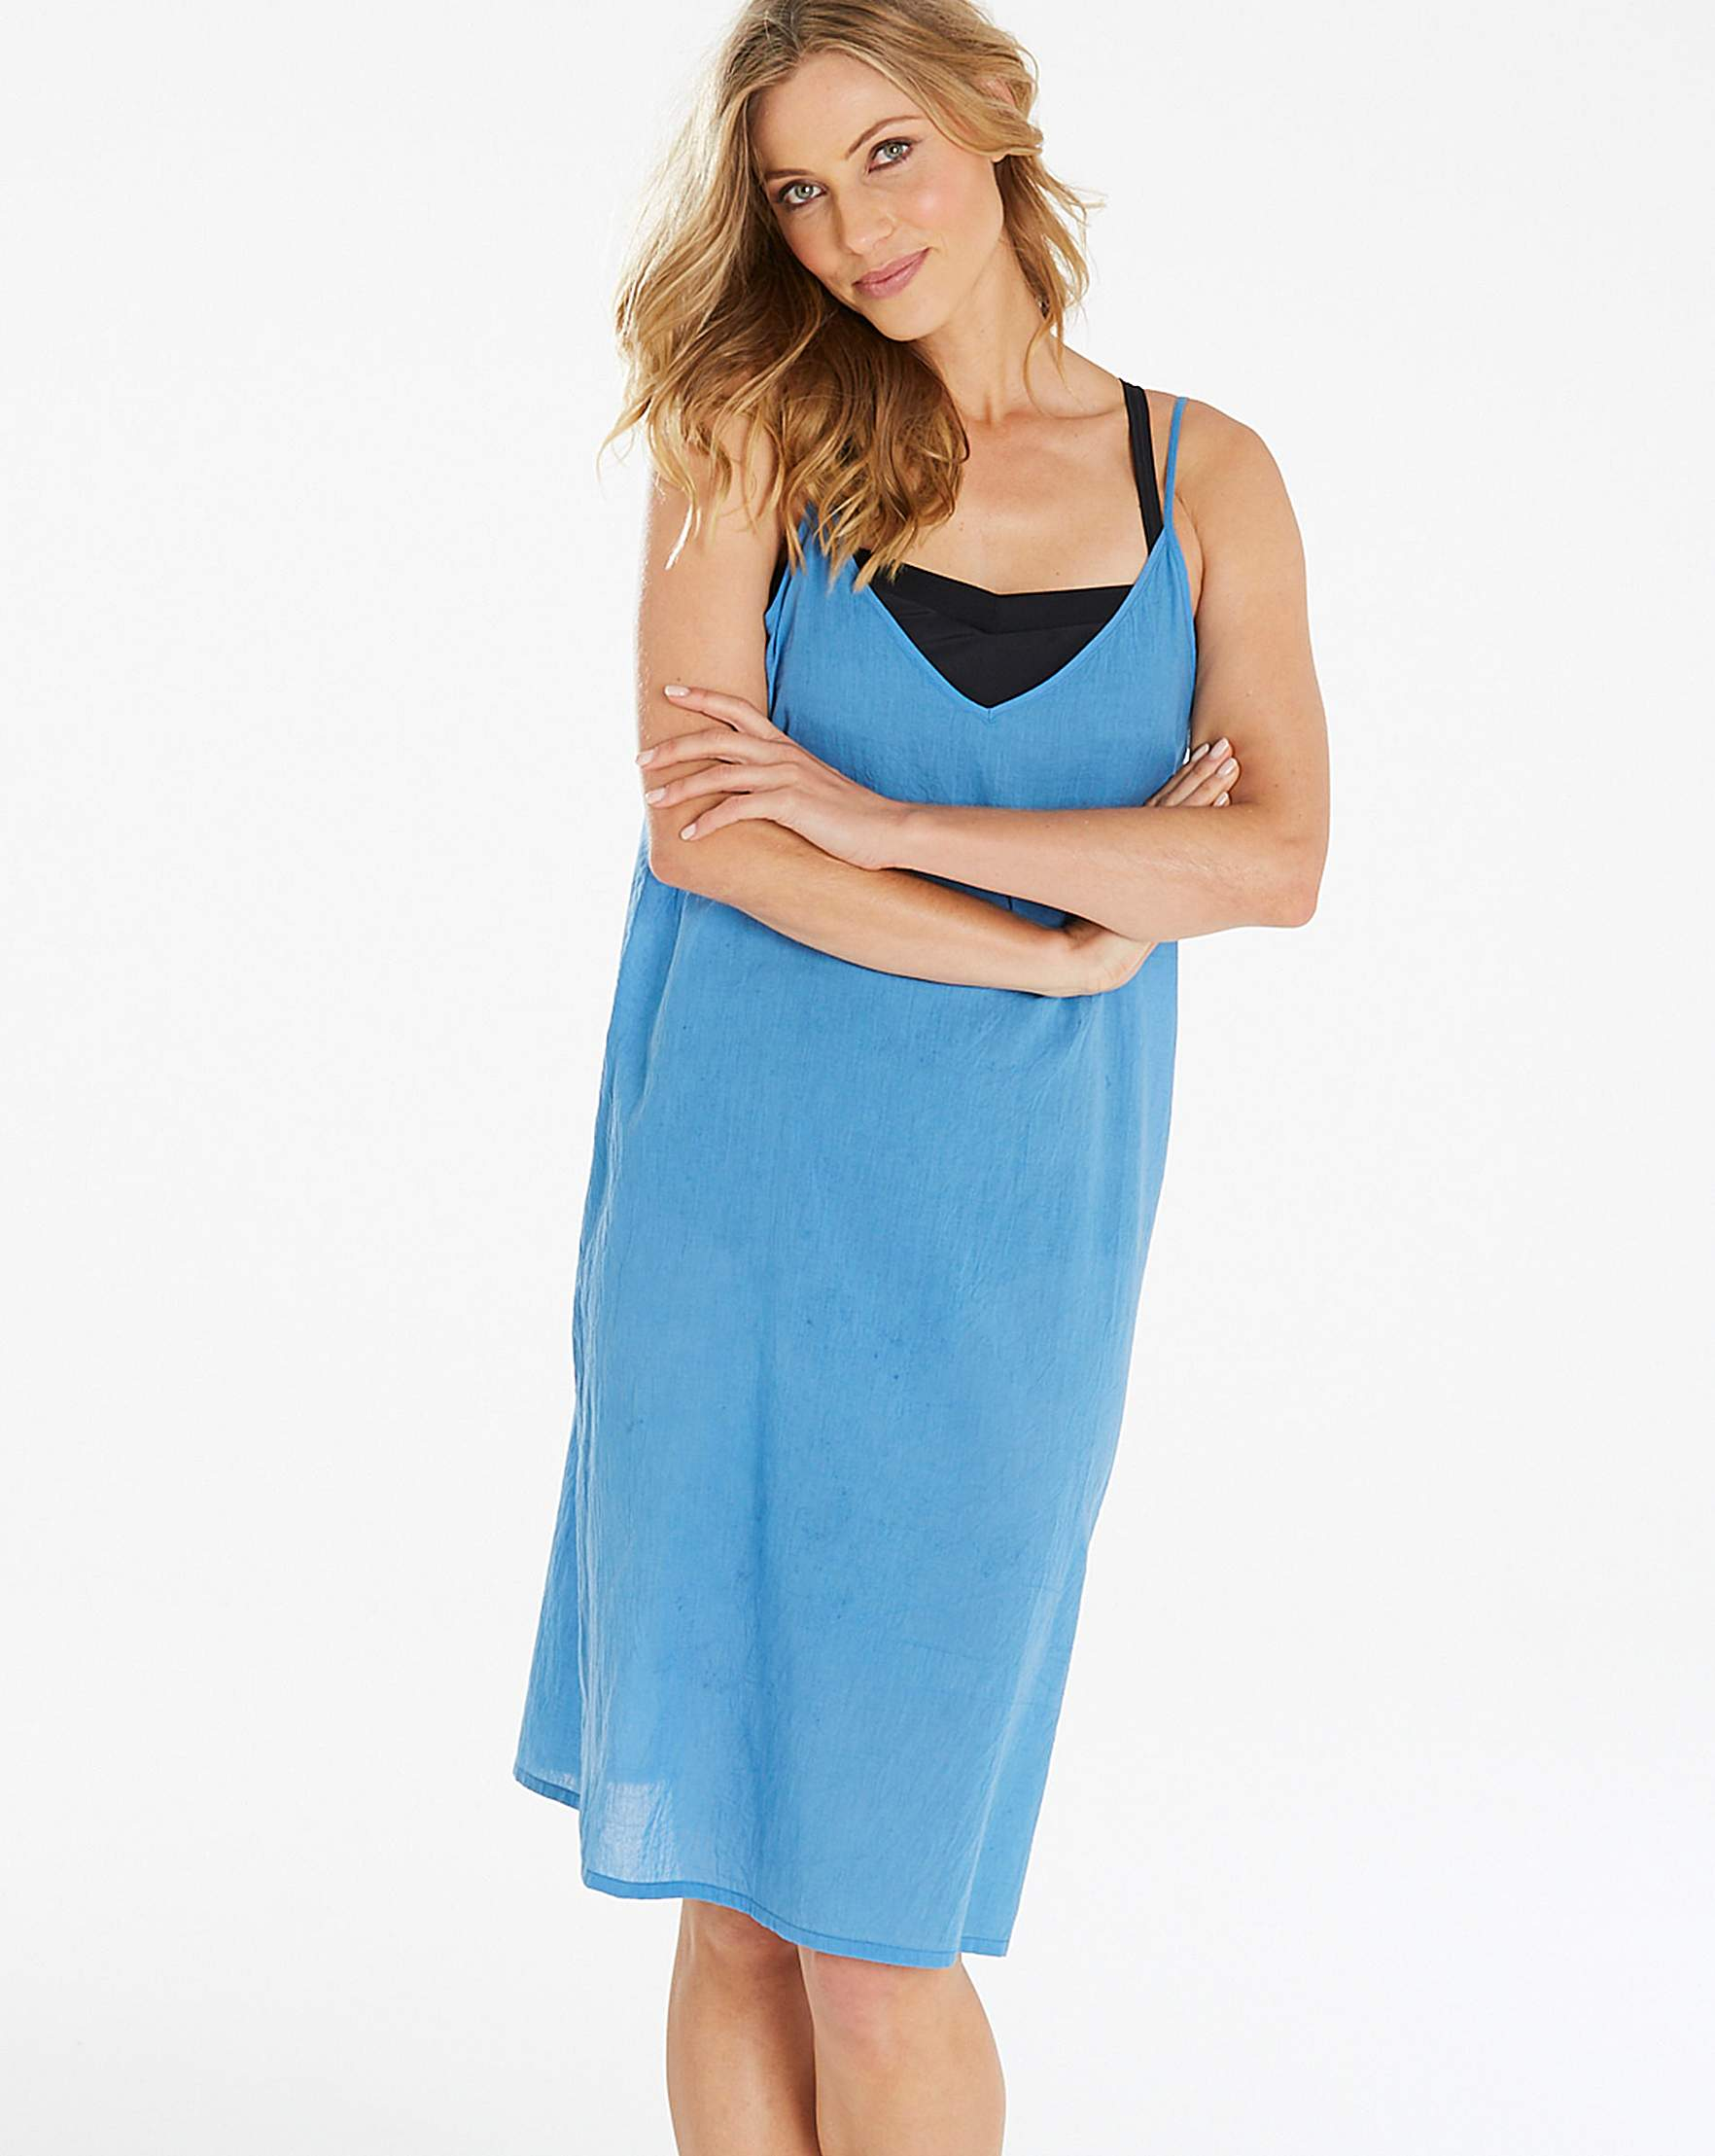 bf1ac5a7073 Simply Yours Value Strappy Beach Dress